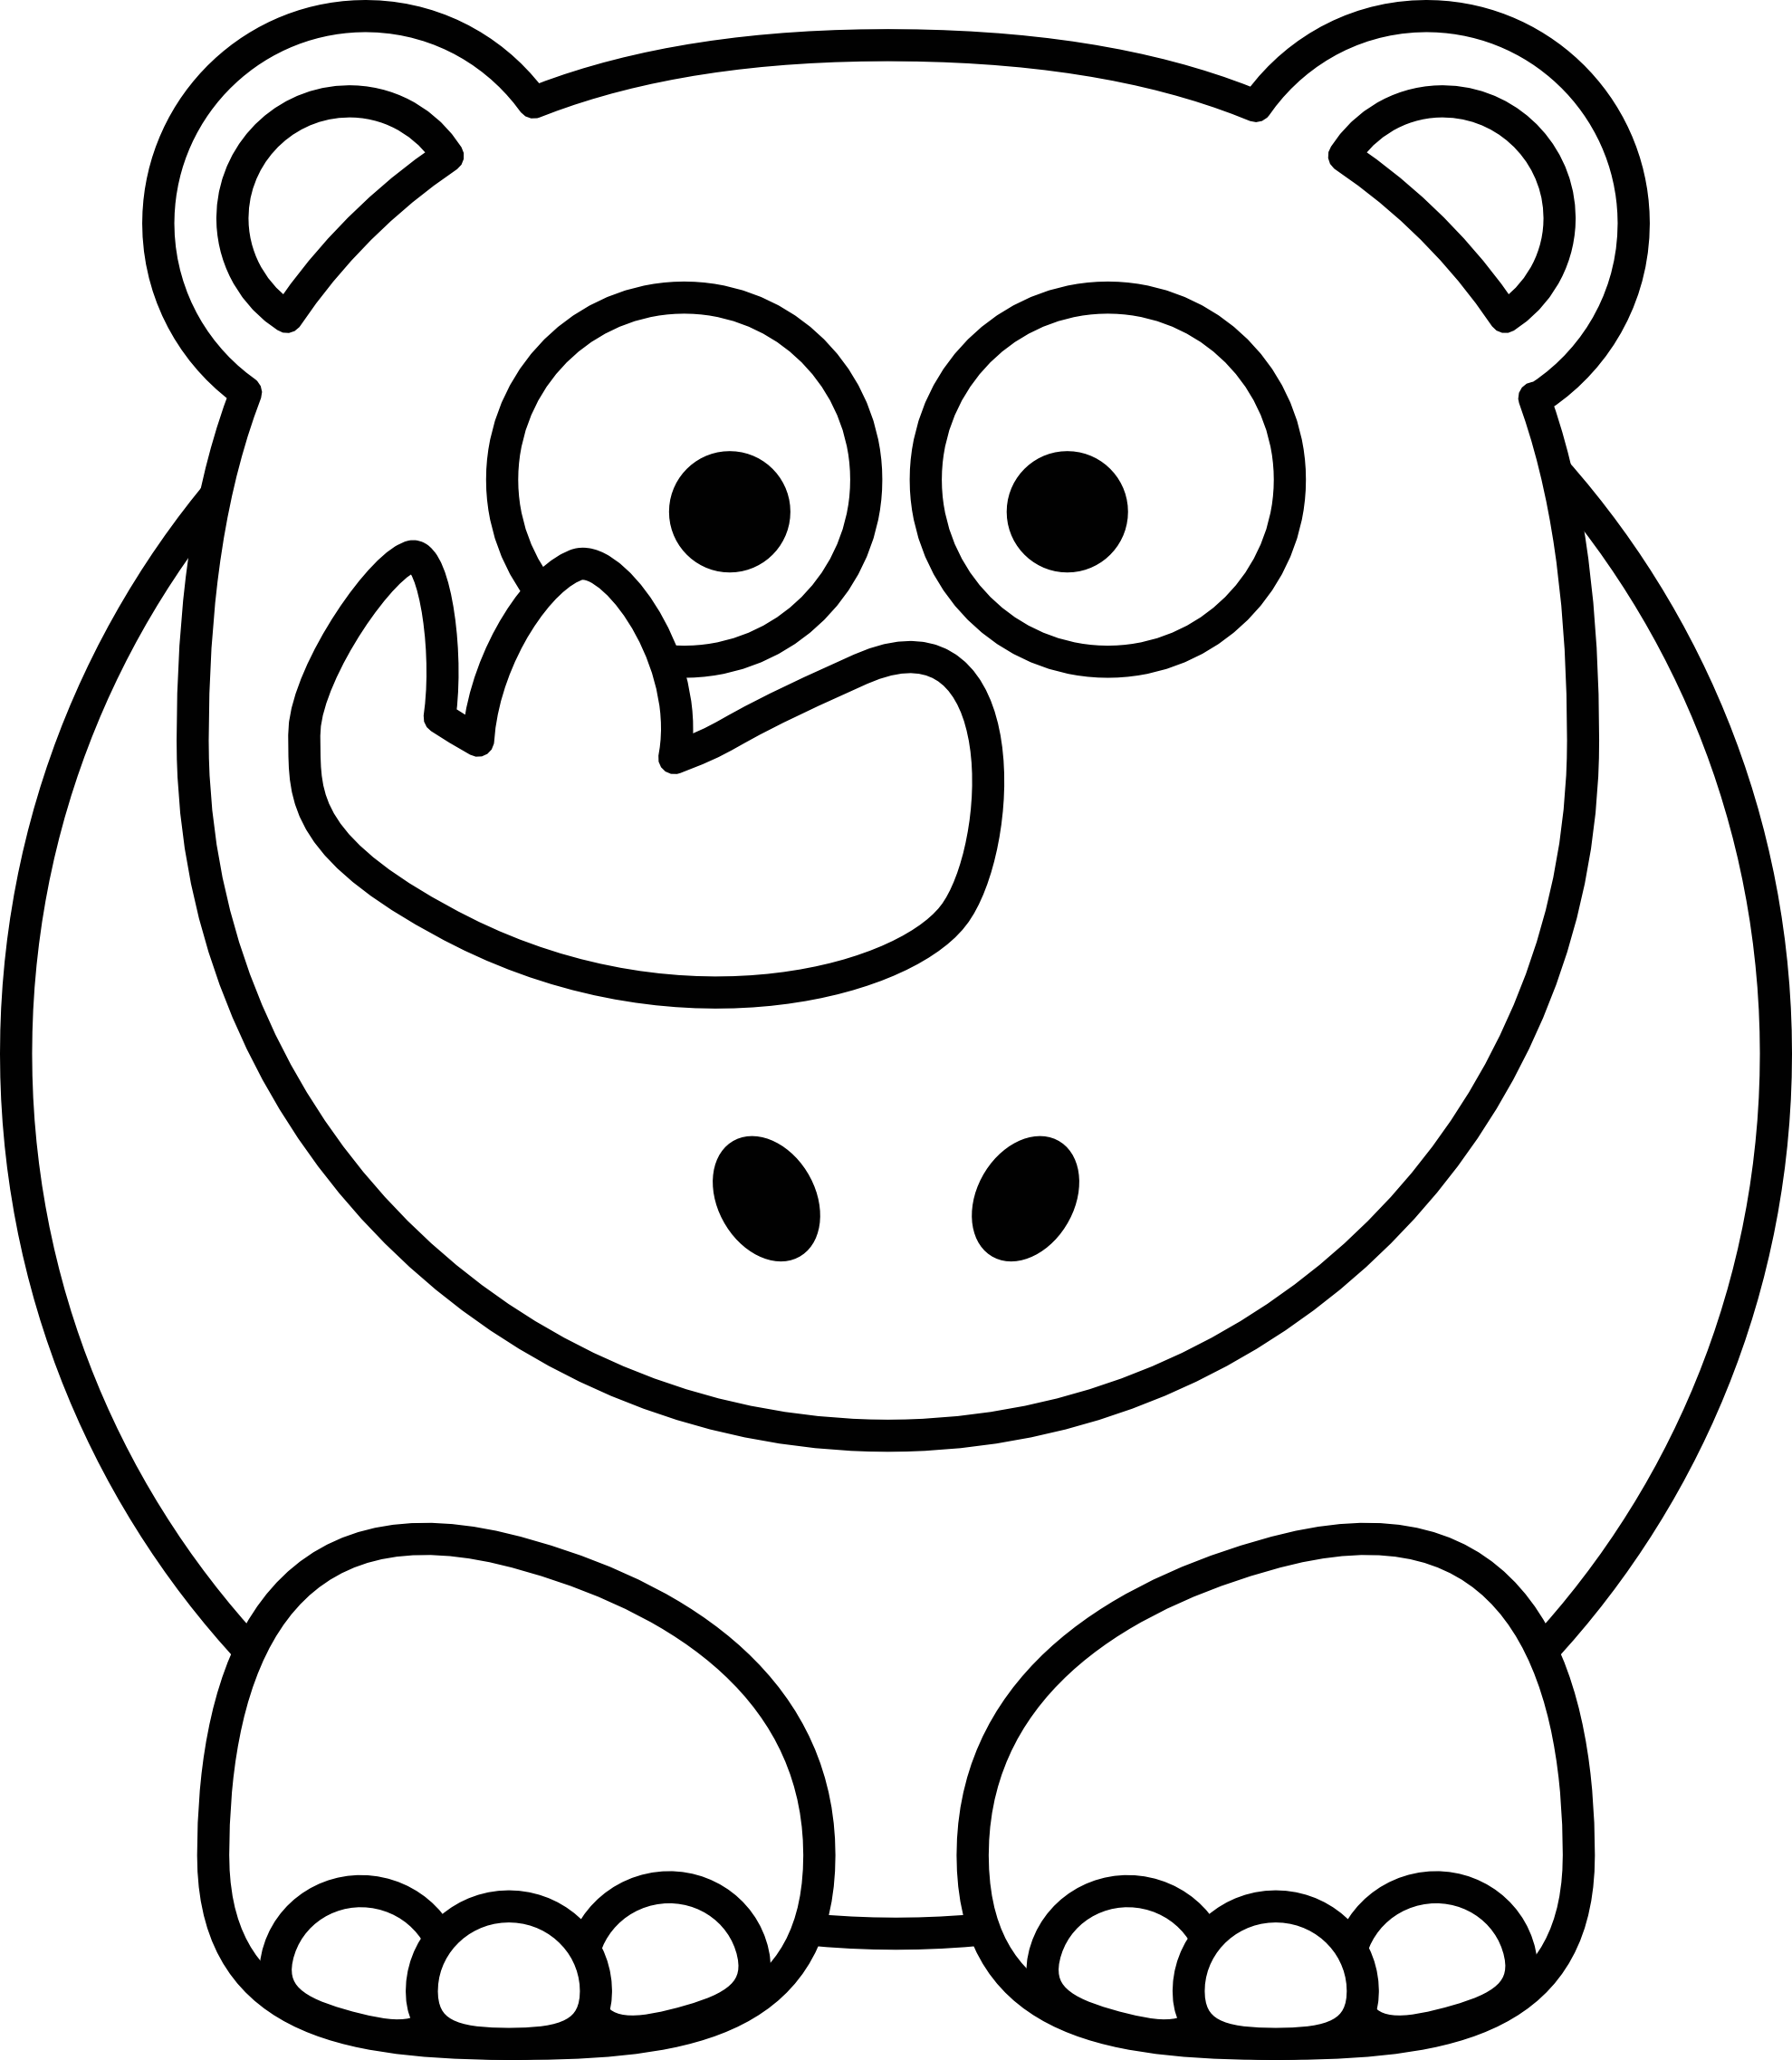 Line Drawing In Computer Graphics : Line drawing clip art free clipart best